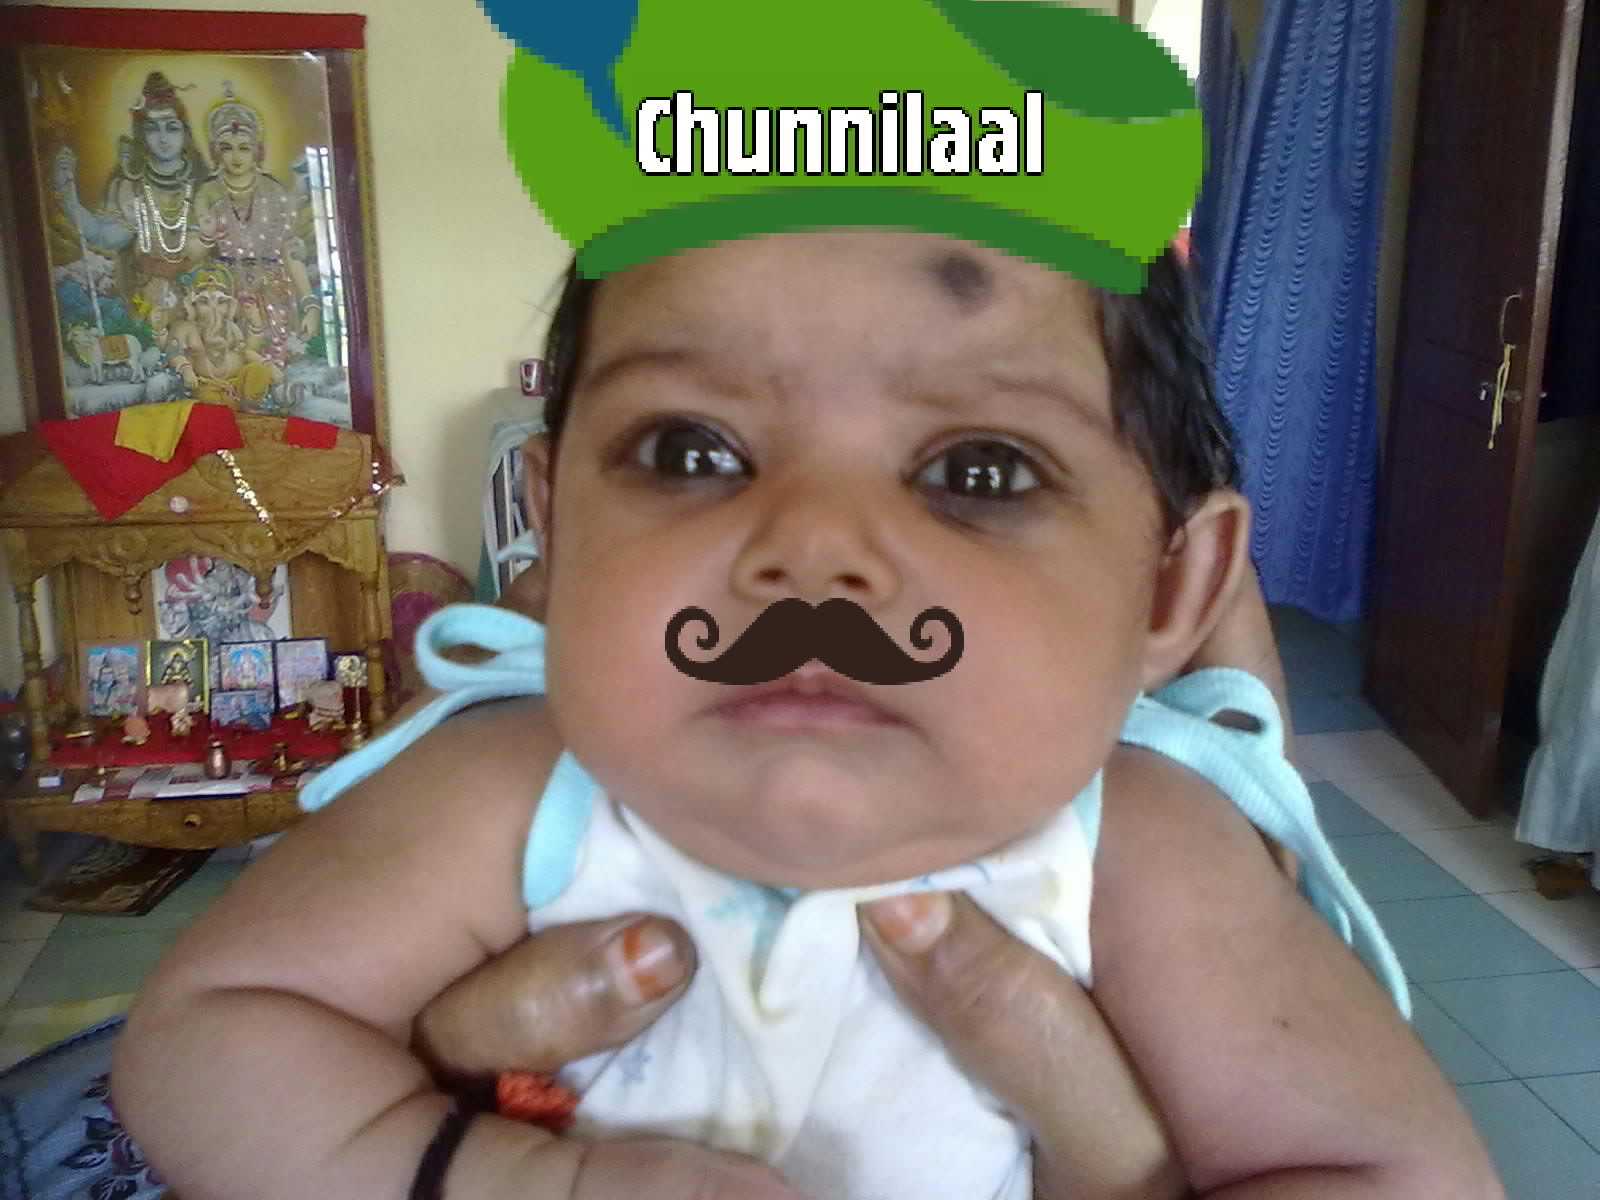 Funny babies 160 wide wallpaper funnypicture funny babies 160 wide wallpaper voltagebd Image collections